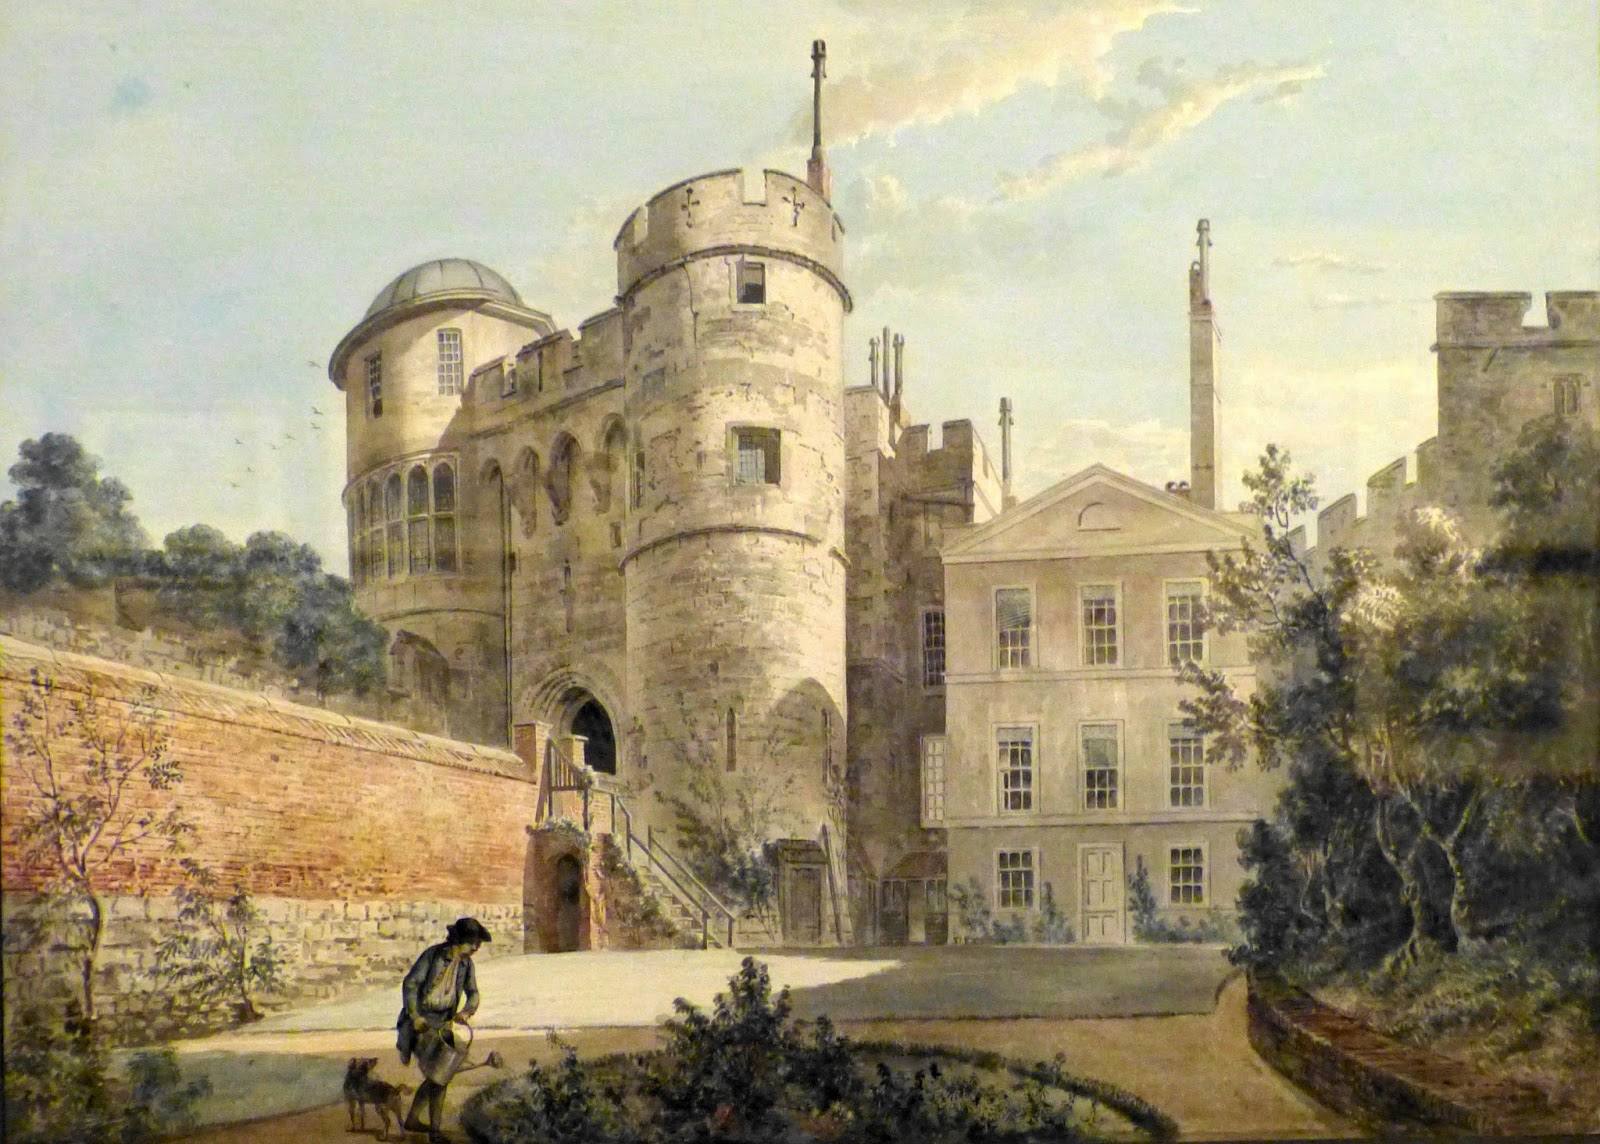 The Norman Gateway and Moat Garden, Windsor Castle  by Paul Sandby (c1770)